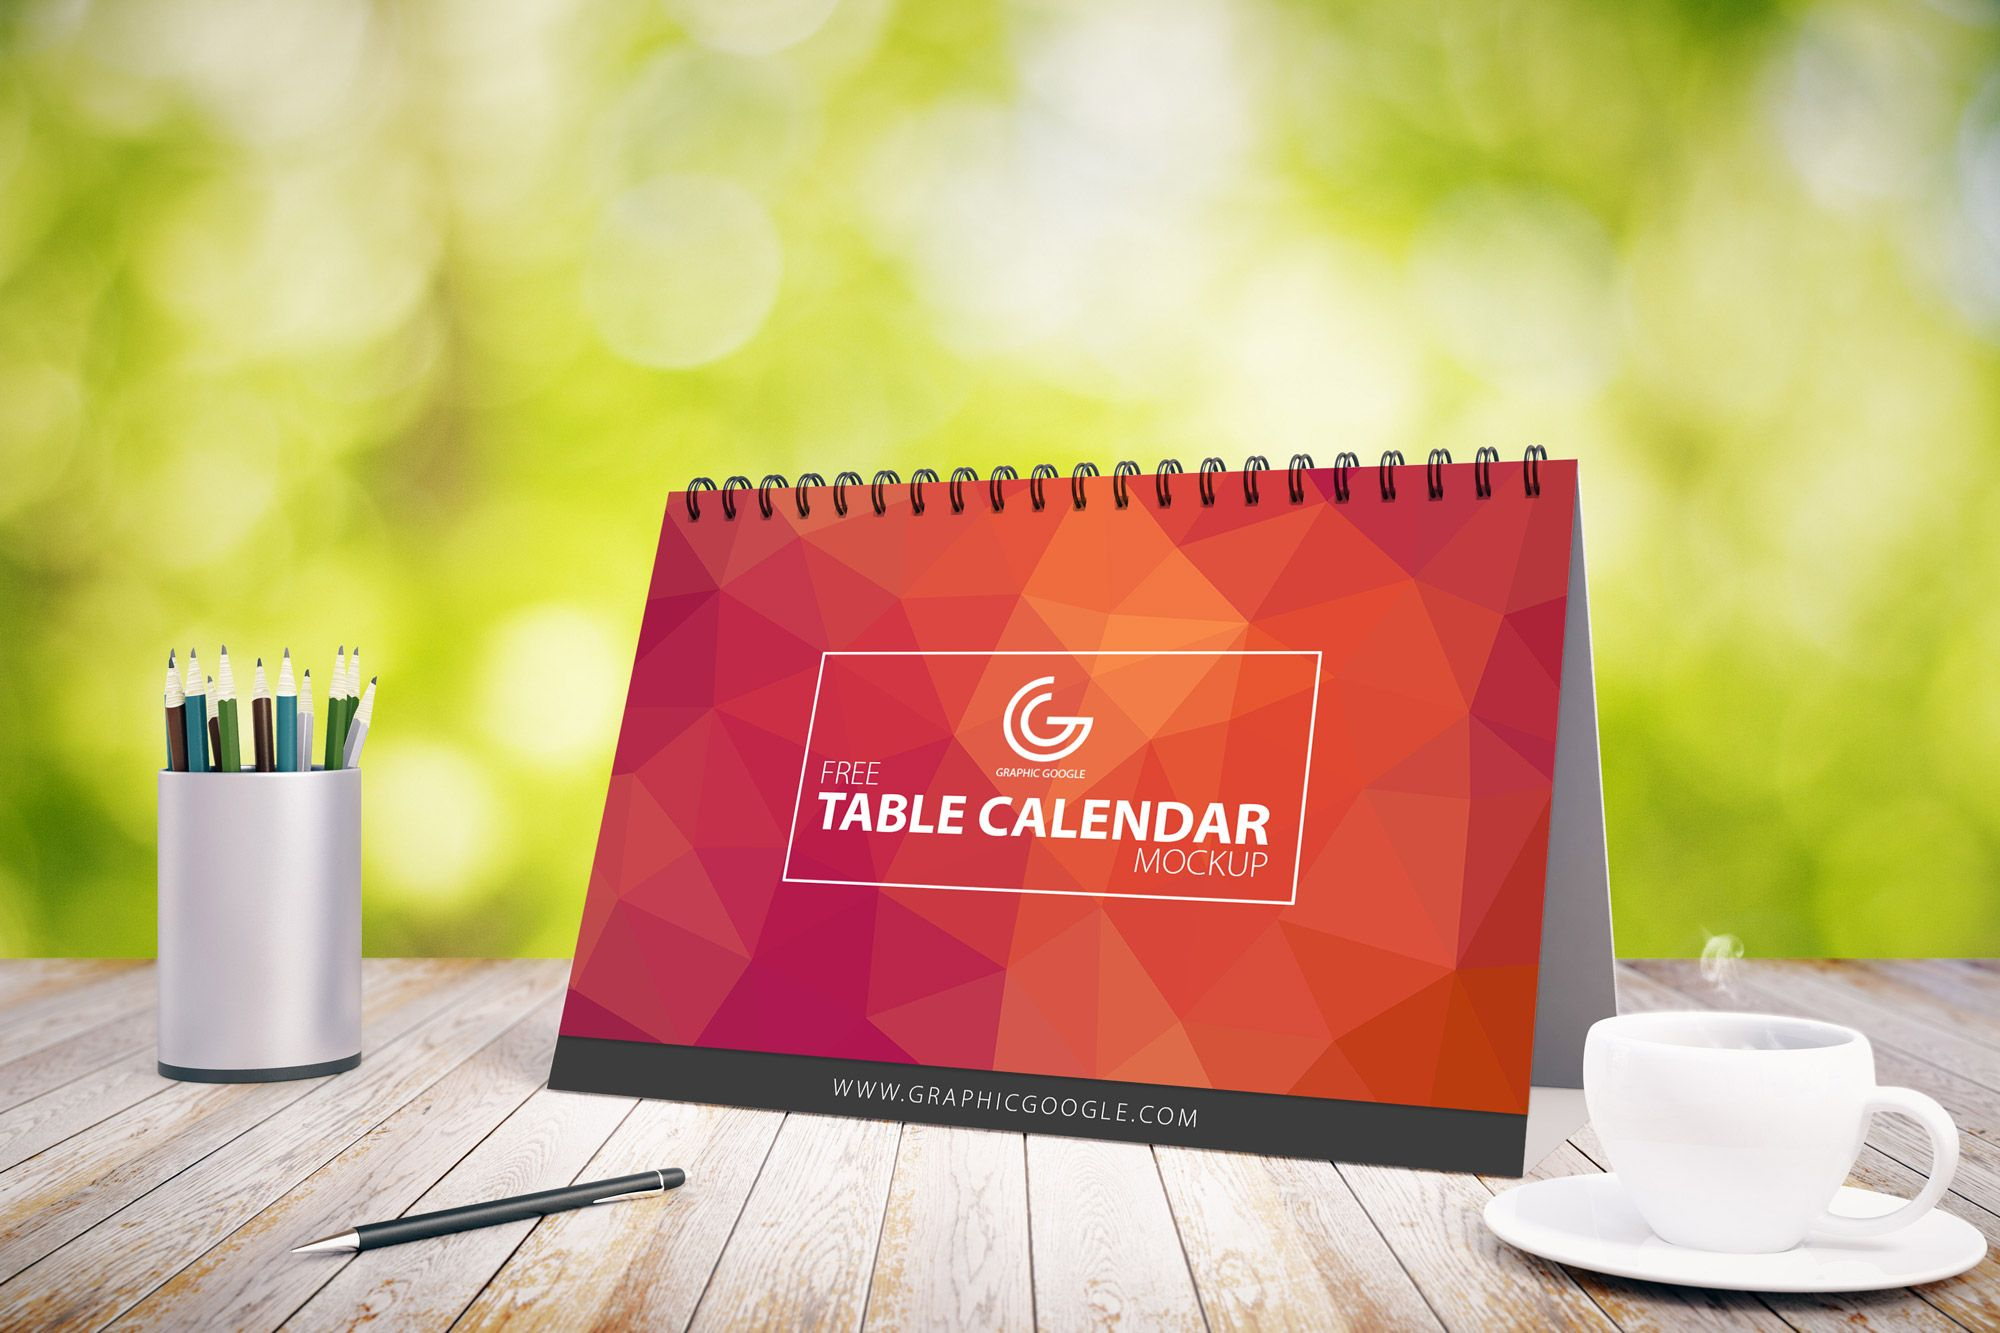 Free Table Calendar Mockup PSD | Graphic Google | #free #photoshop ...